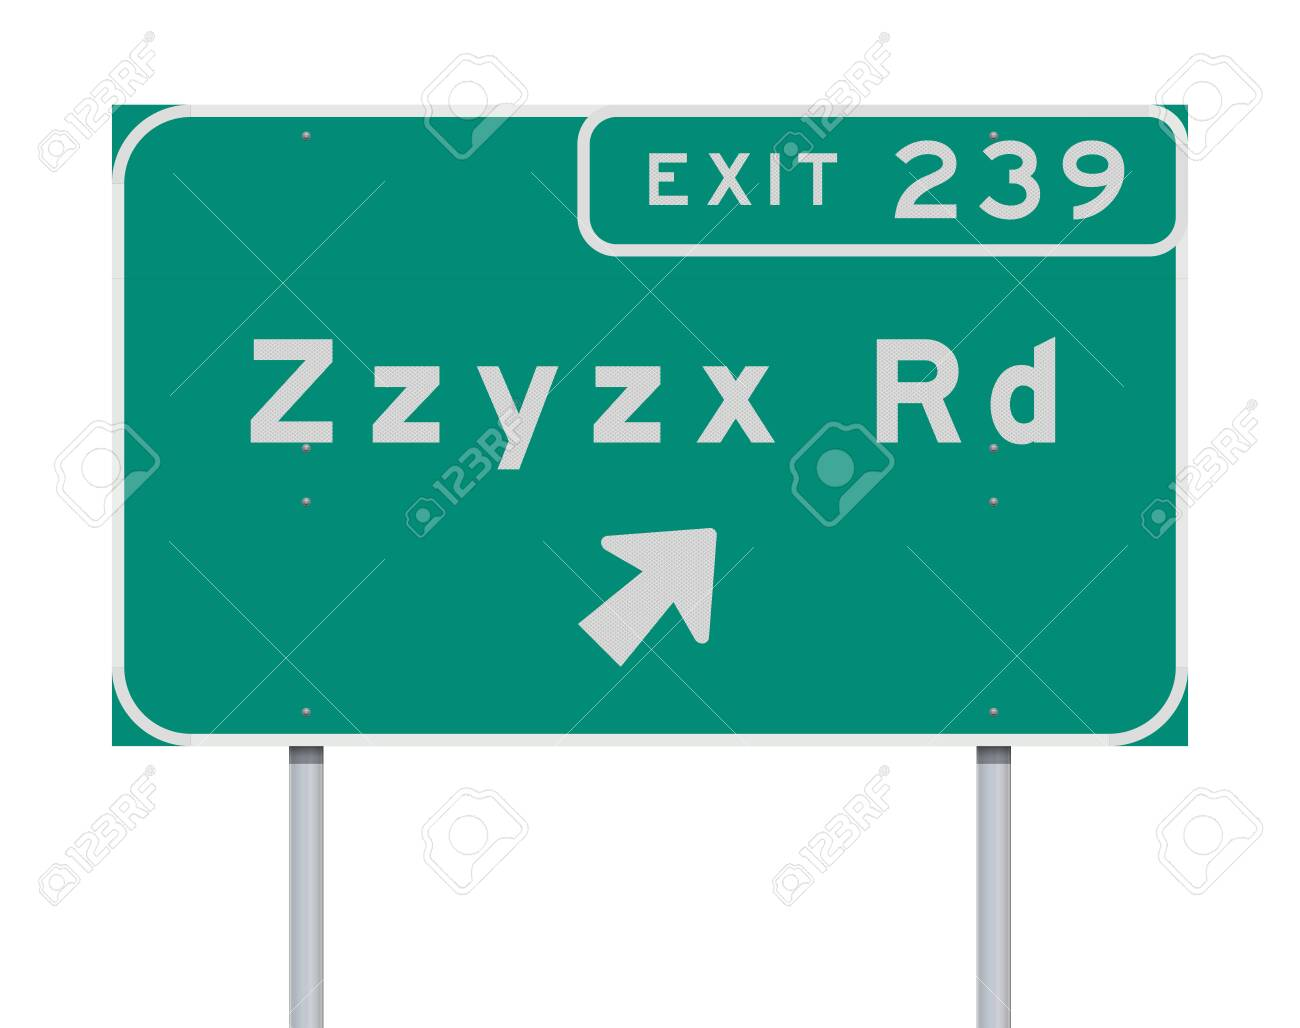 Zzyzx Route Exit direction Road sign - 120332606